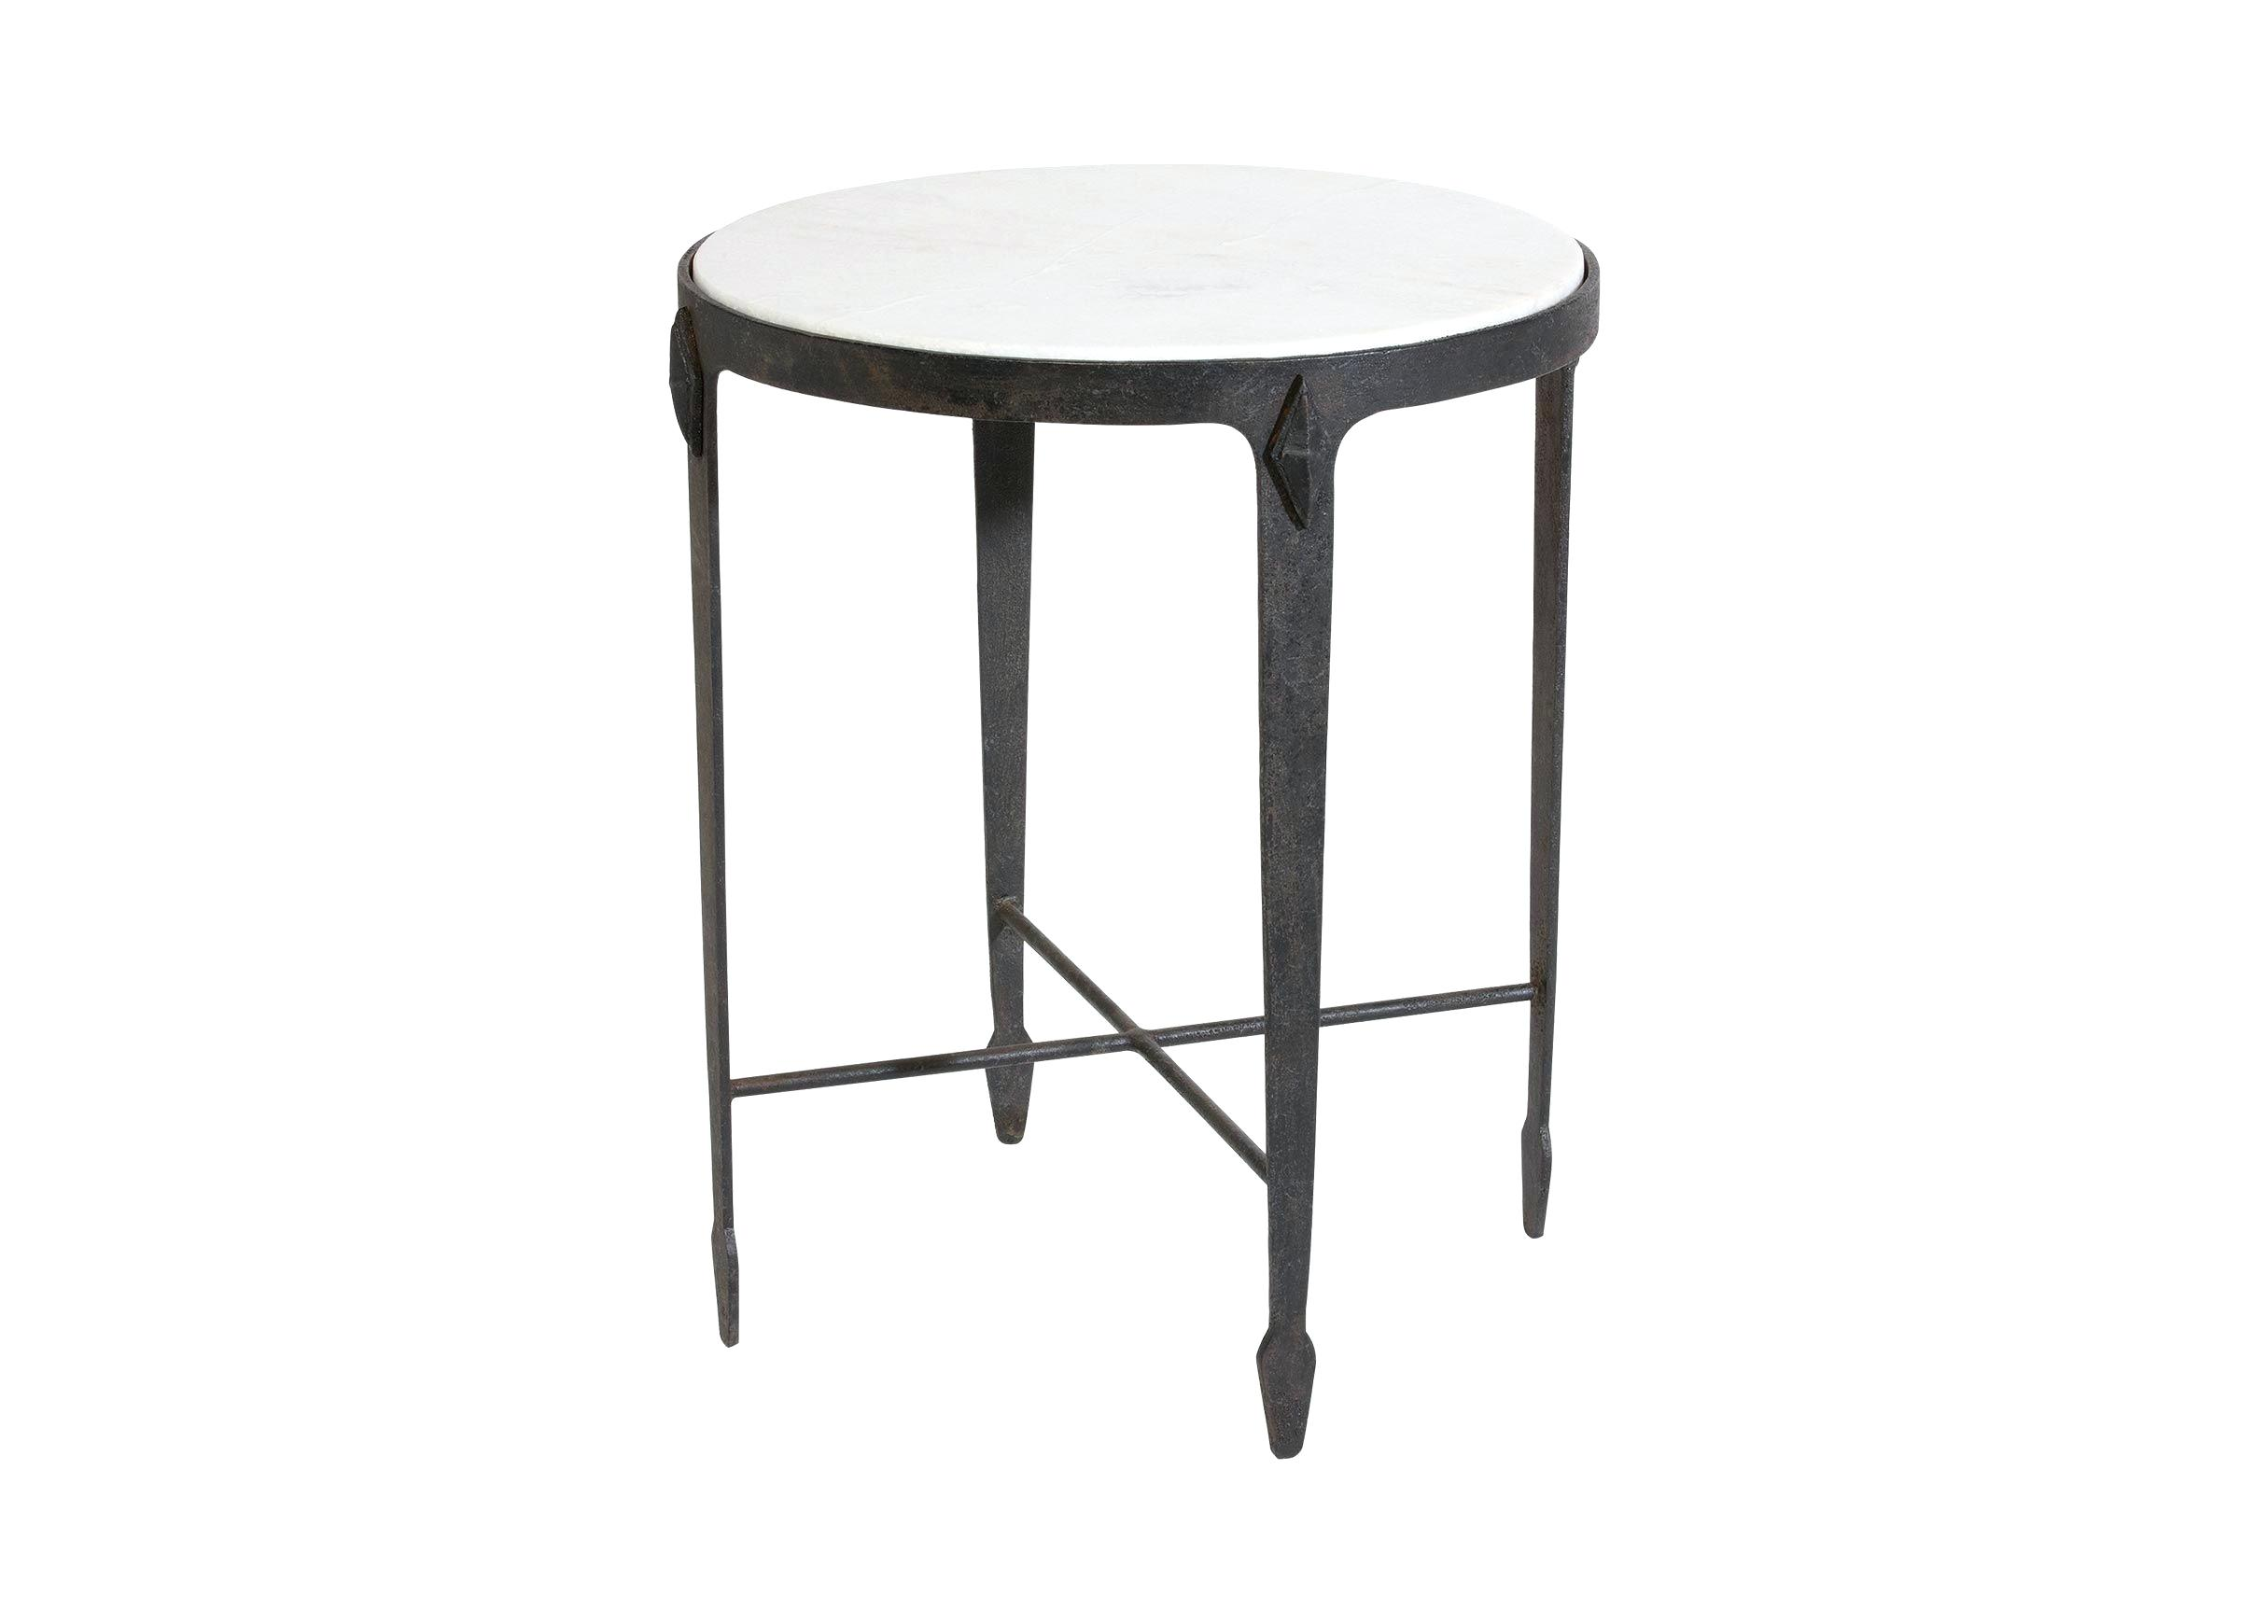 marble top round accent table fazedores black small stackable tables nautical pendant lighting fixtures chair pads target coffee with metal legs leather armchair modern tablecloth